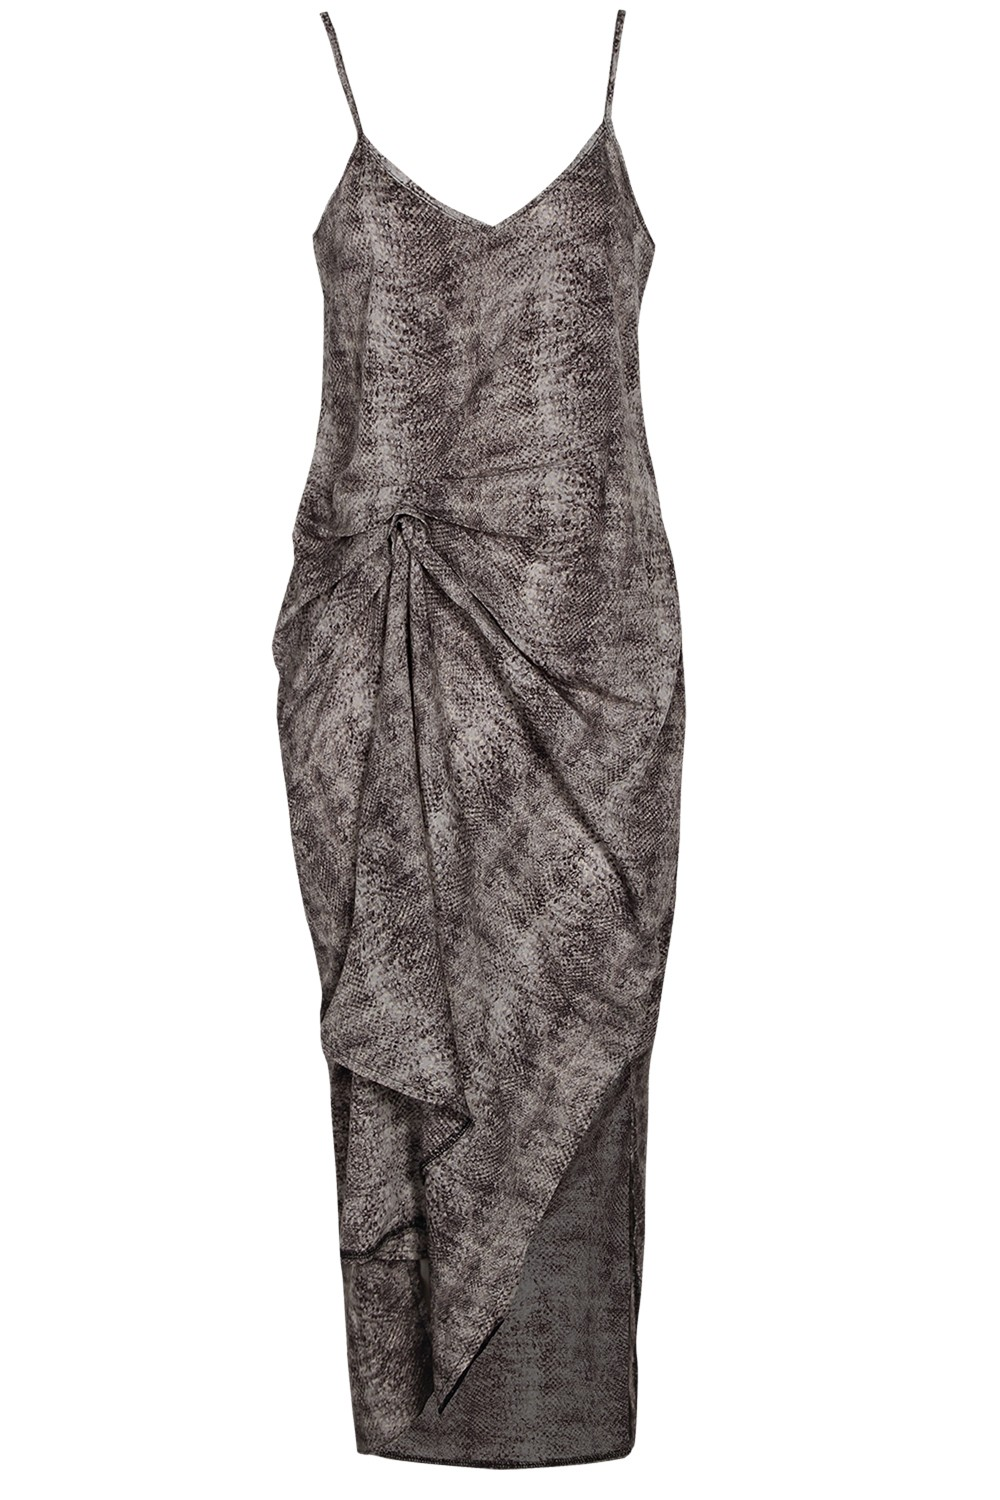 BOOHOO BOUTIQUE Rio Snake Crepe Georgette Cami Dress $65.00